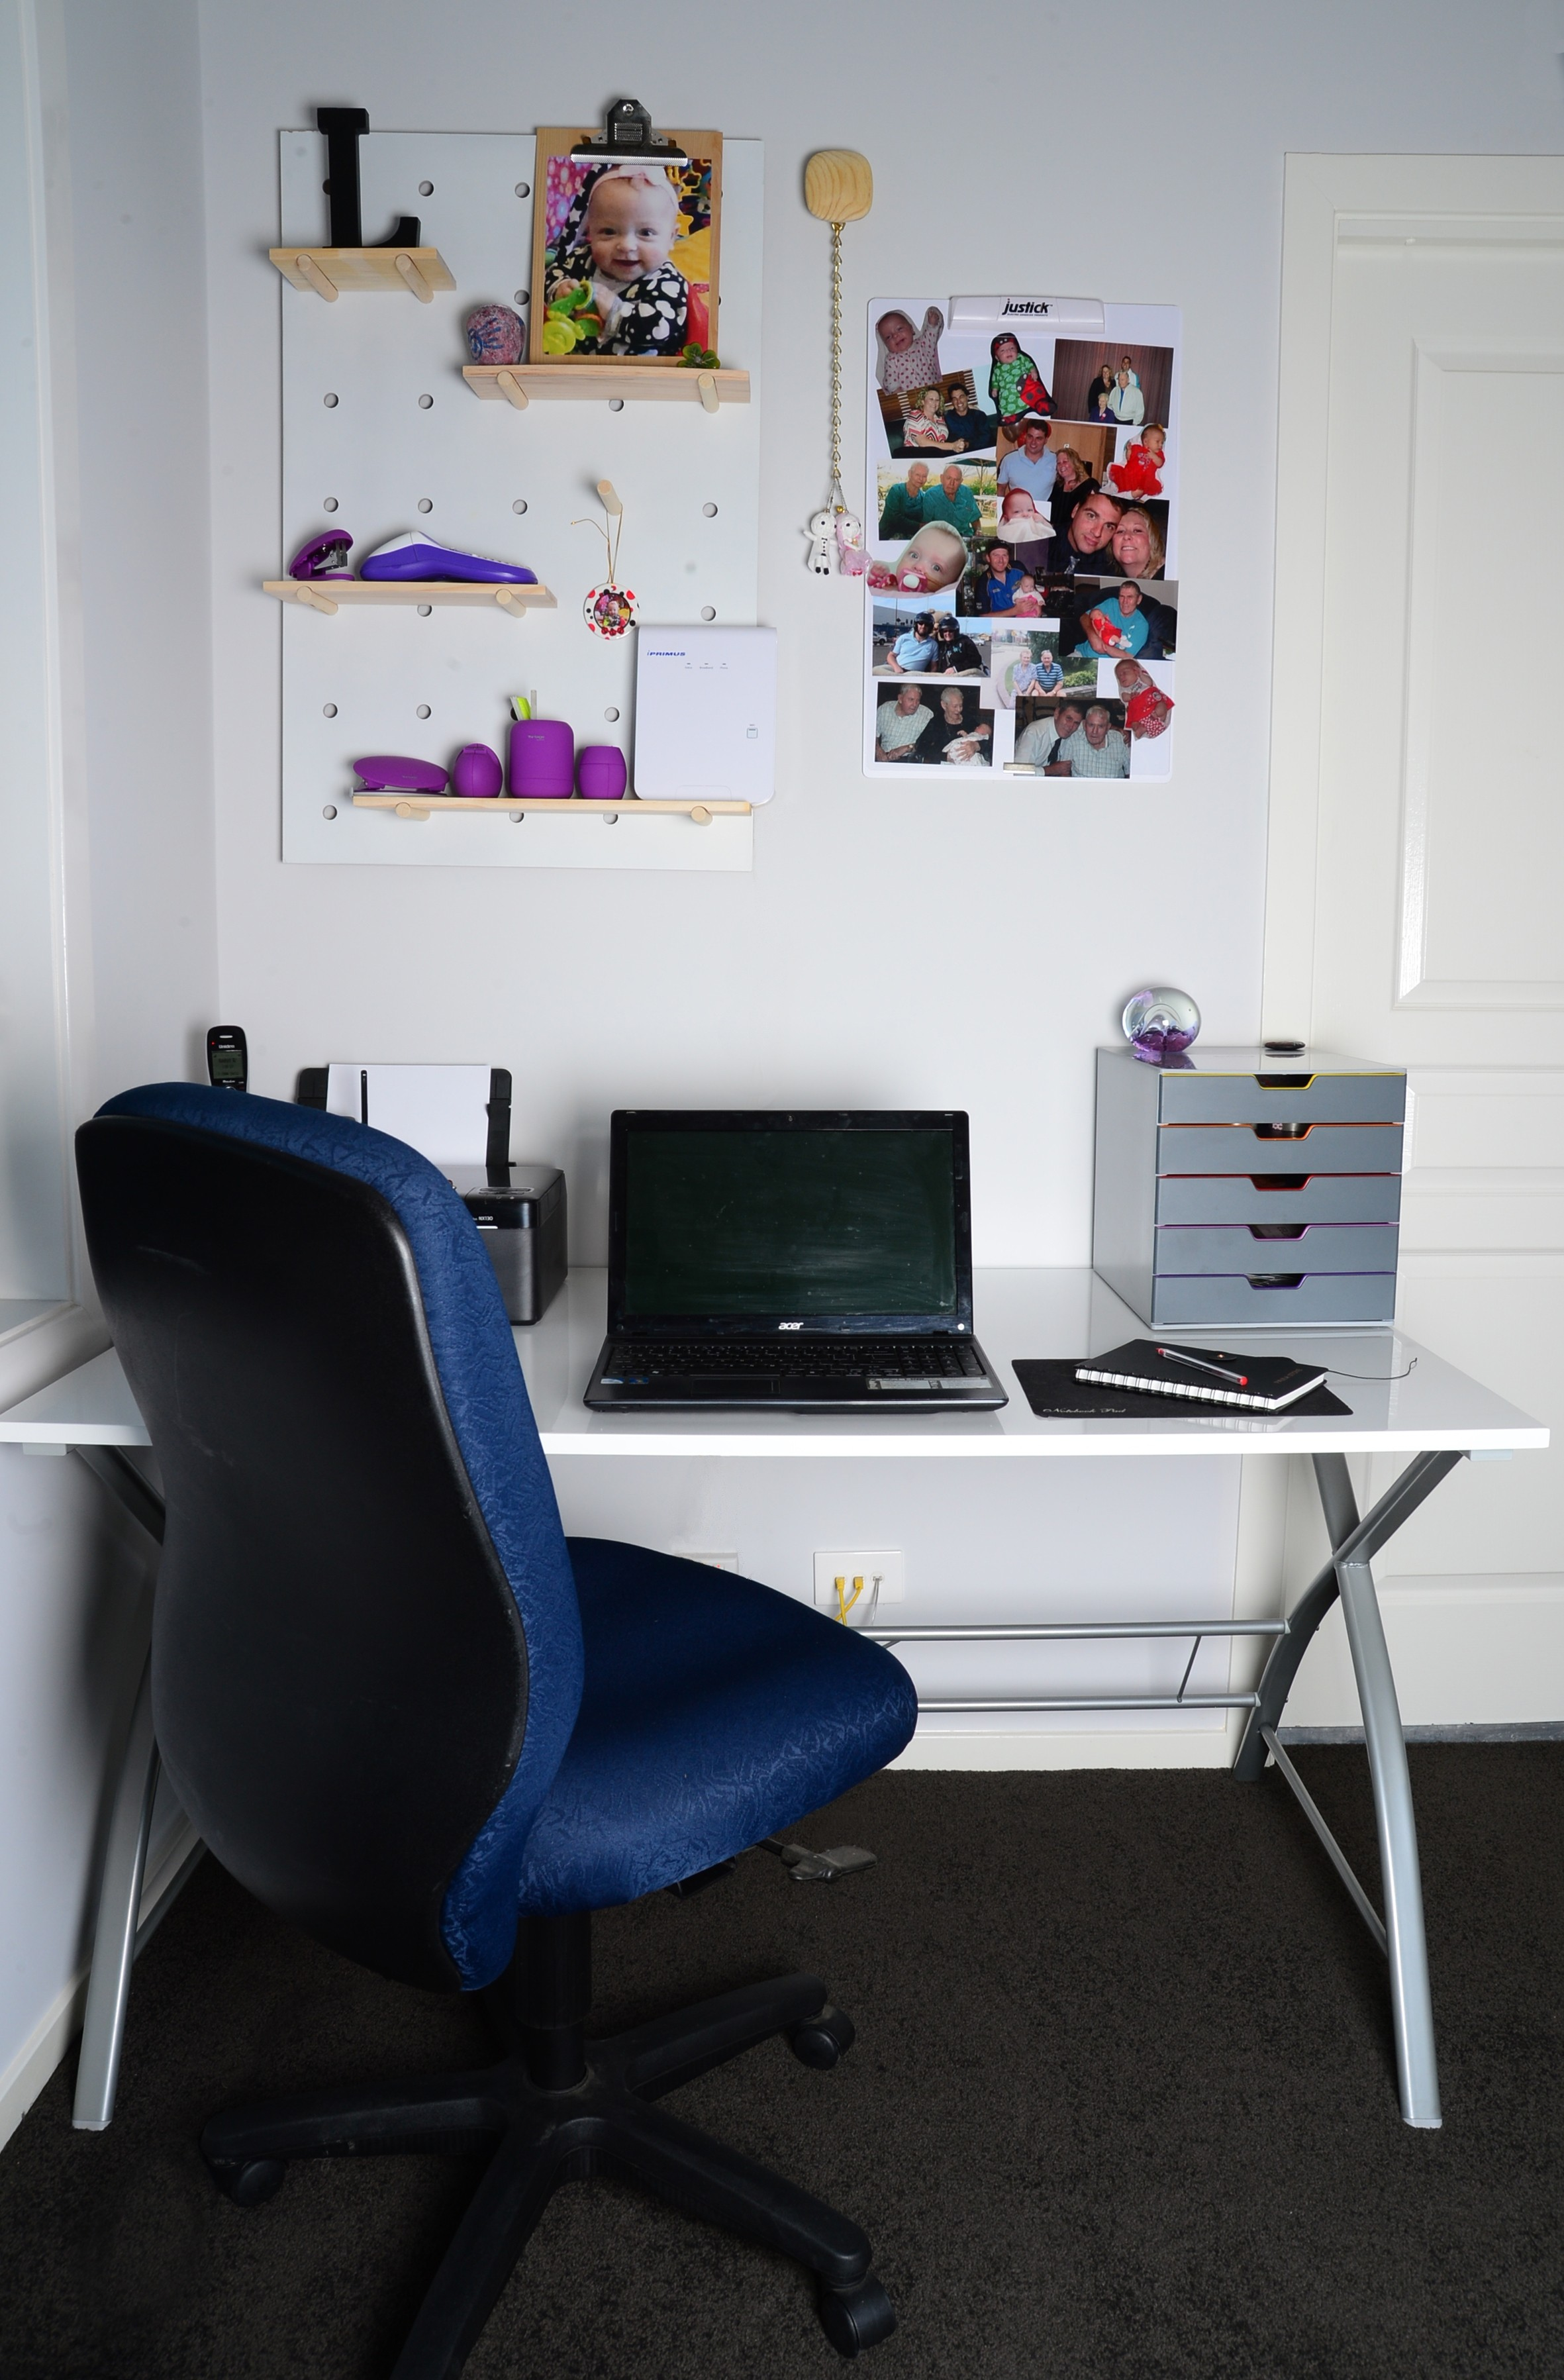 whiteboard for home office. Justick Mini Whiteboard With Clear Overlay In Home Office For